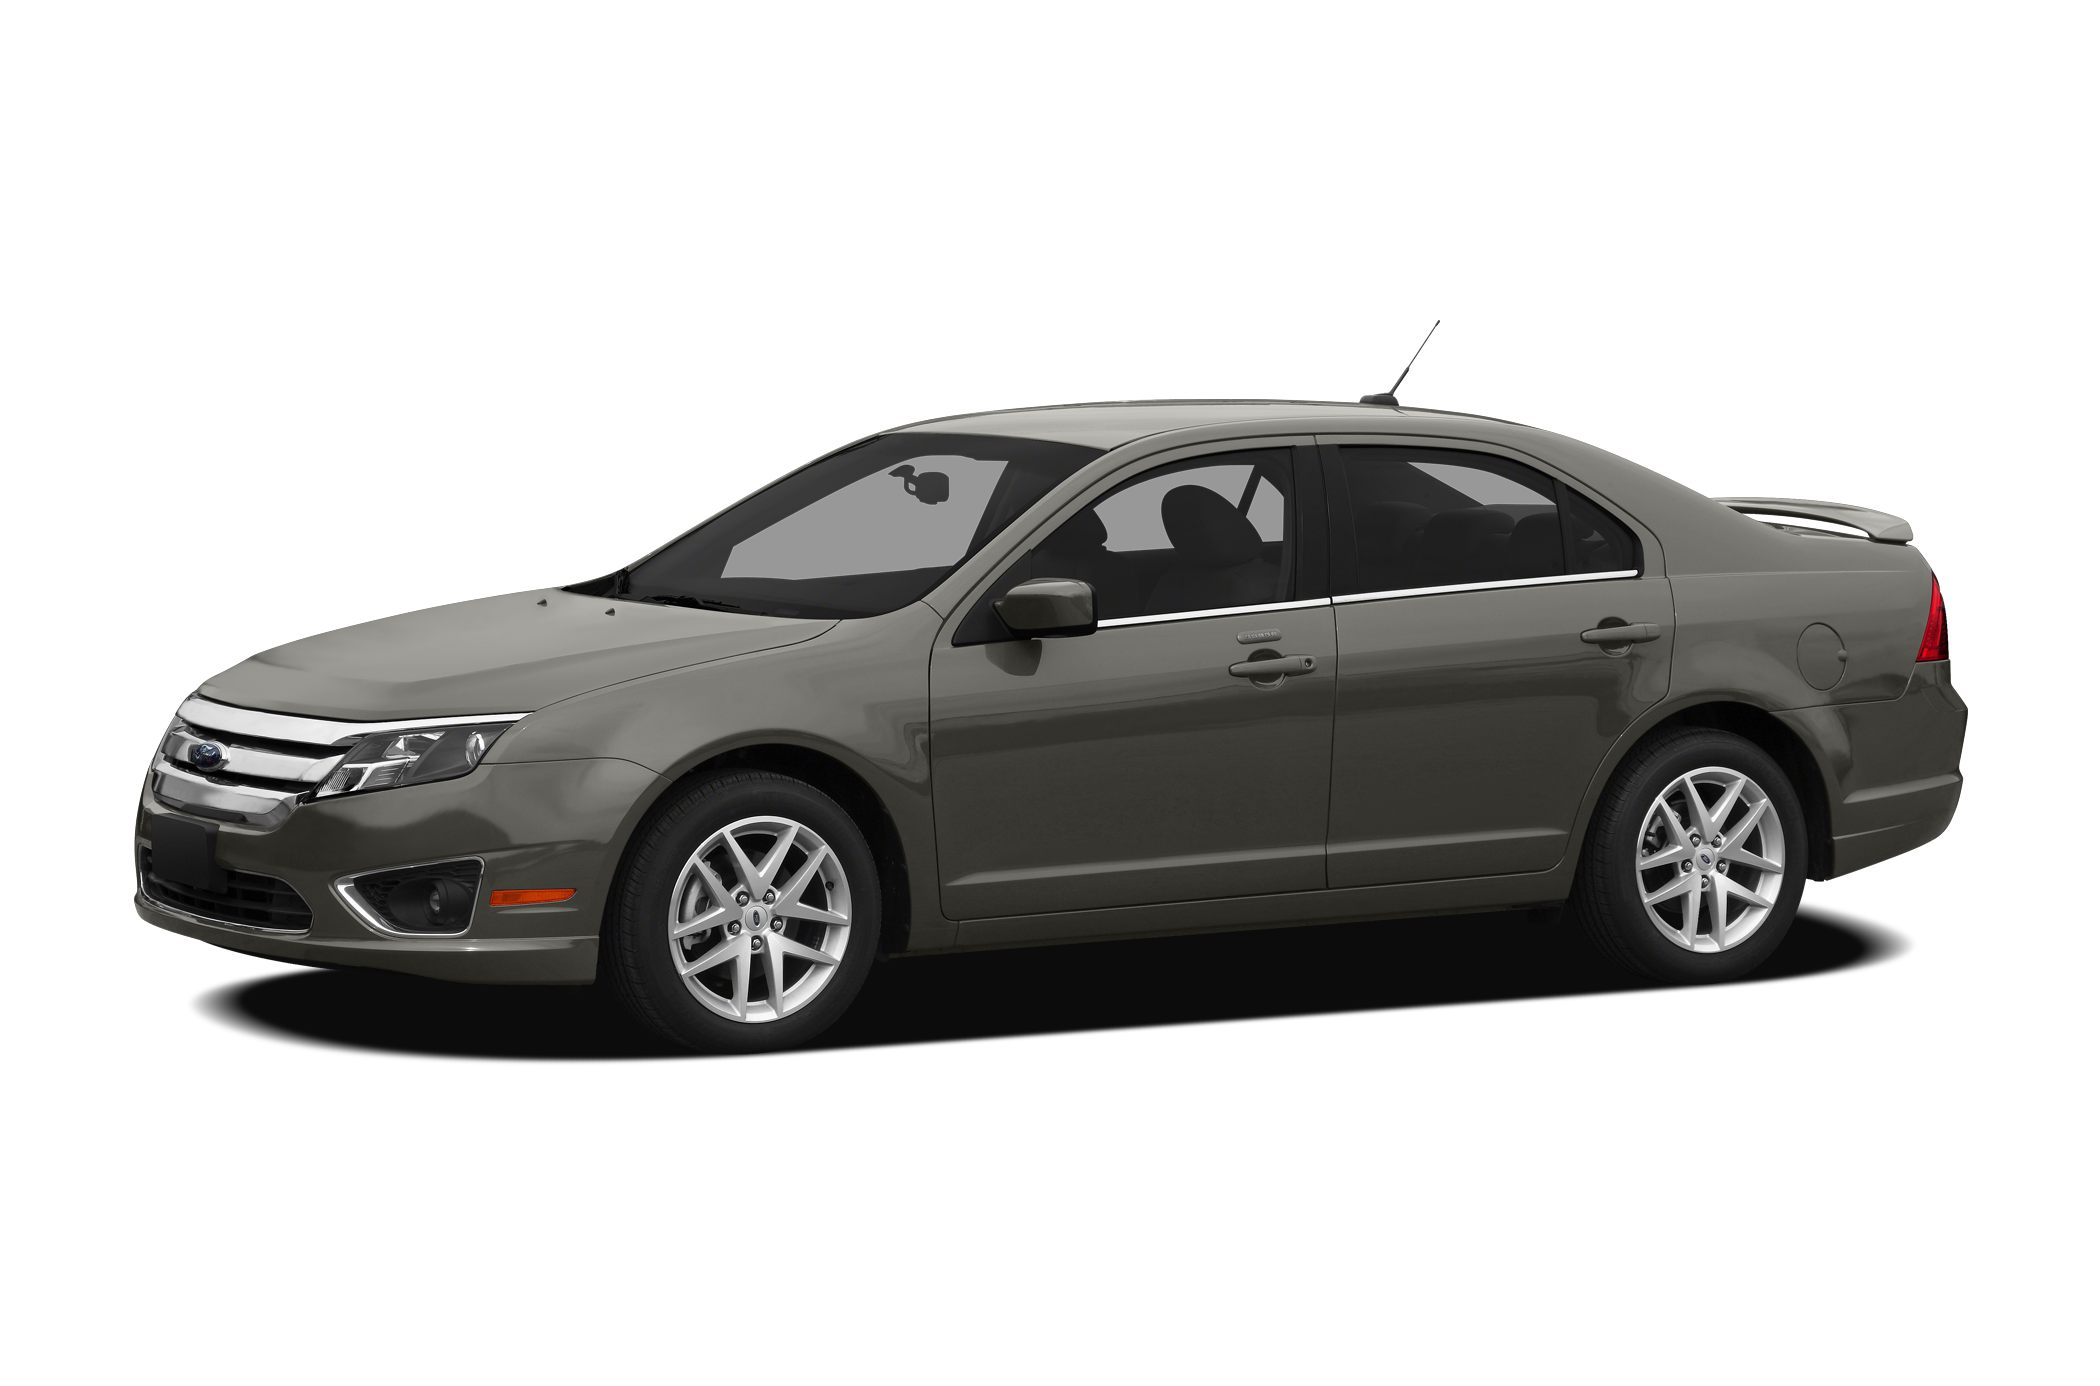 2012 Ford Fusion SE Sedan for sale in Dayton for $15,184 with 32,056 miles.